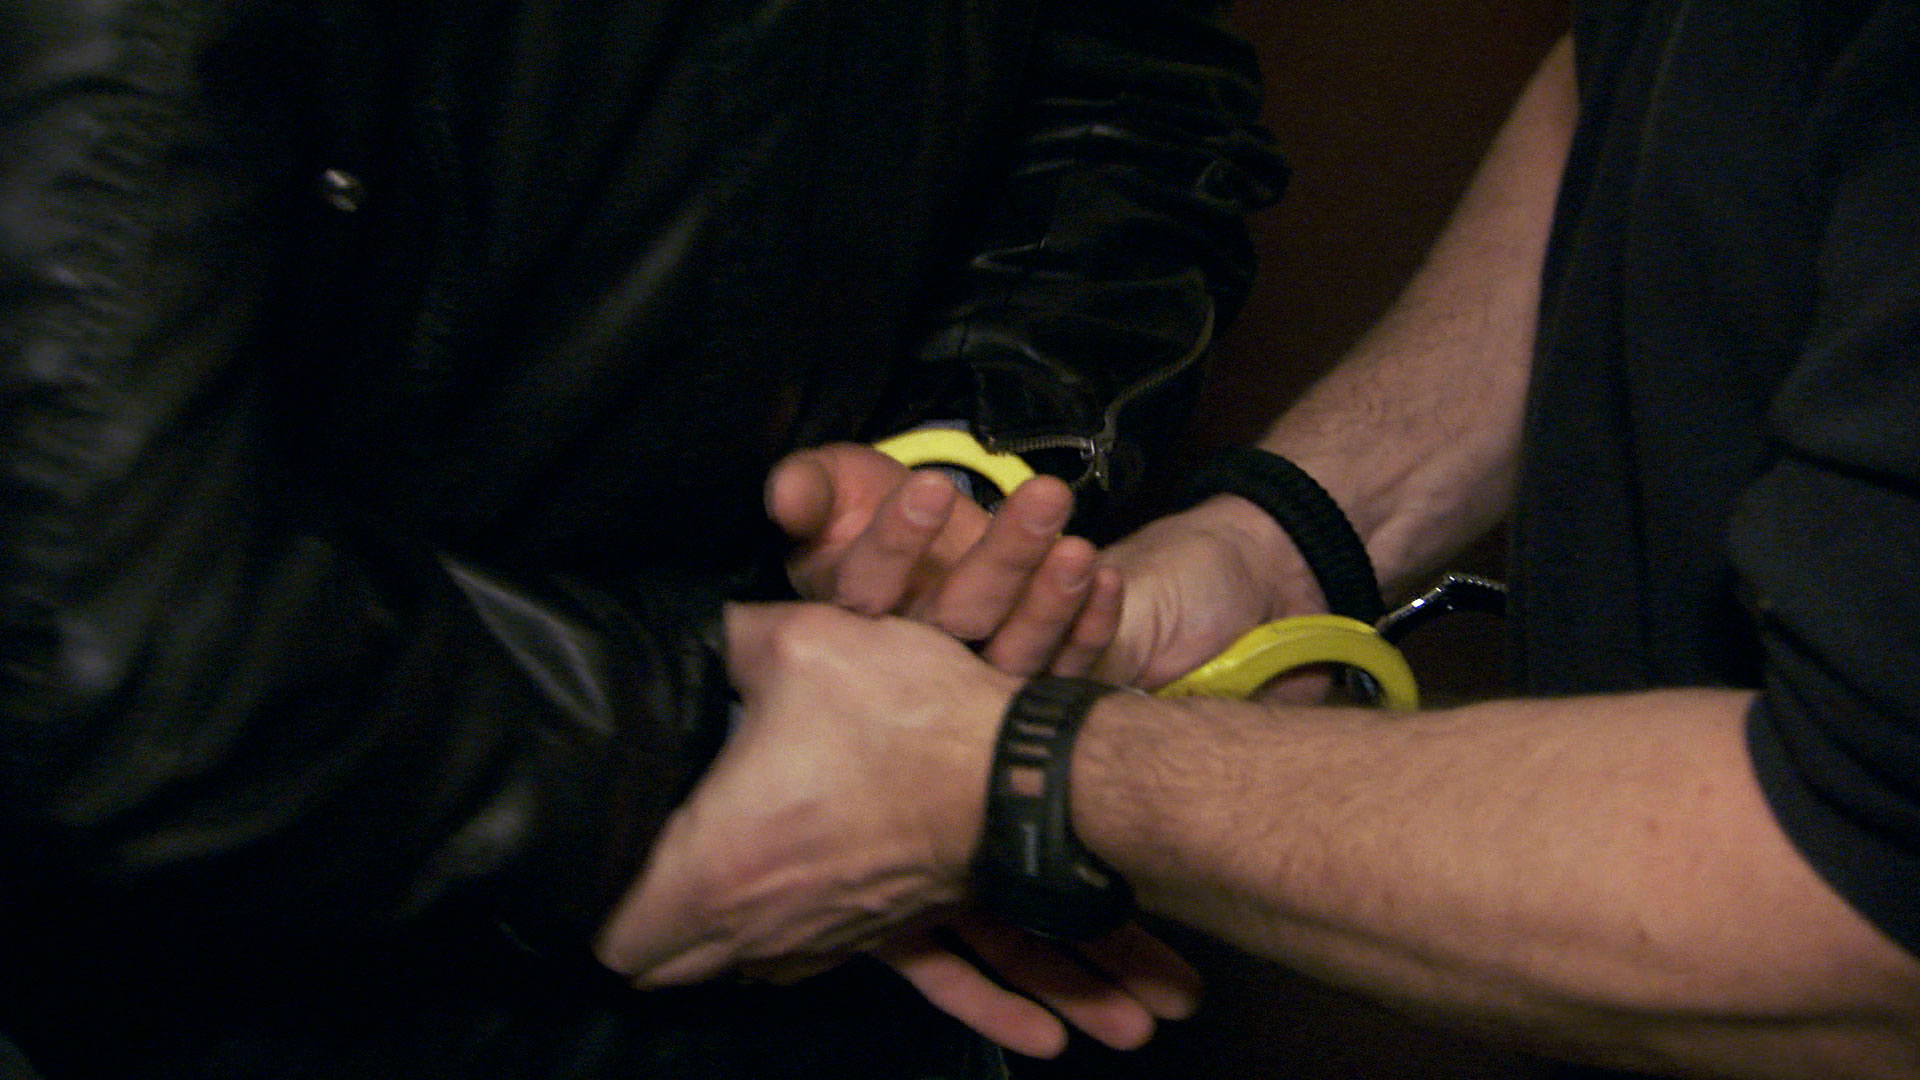 Wrists restrained by yellow handcuffs.